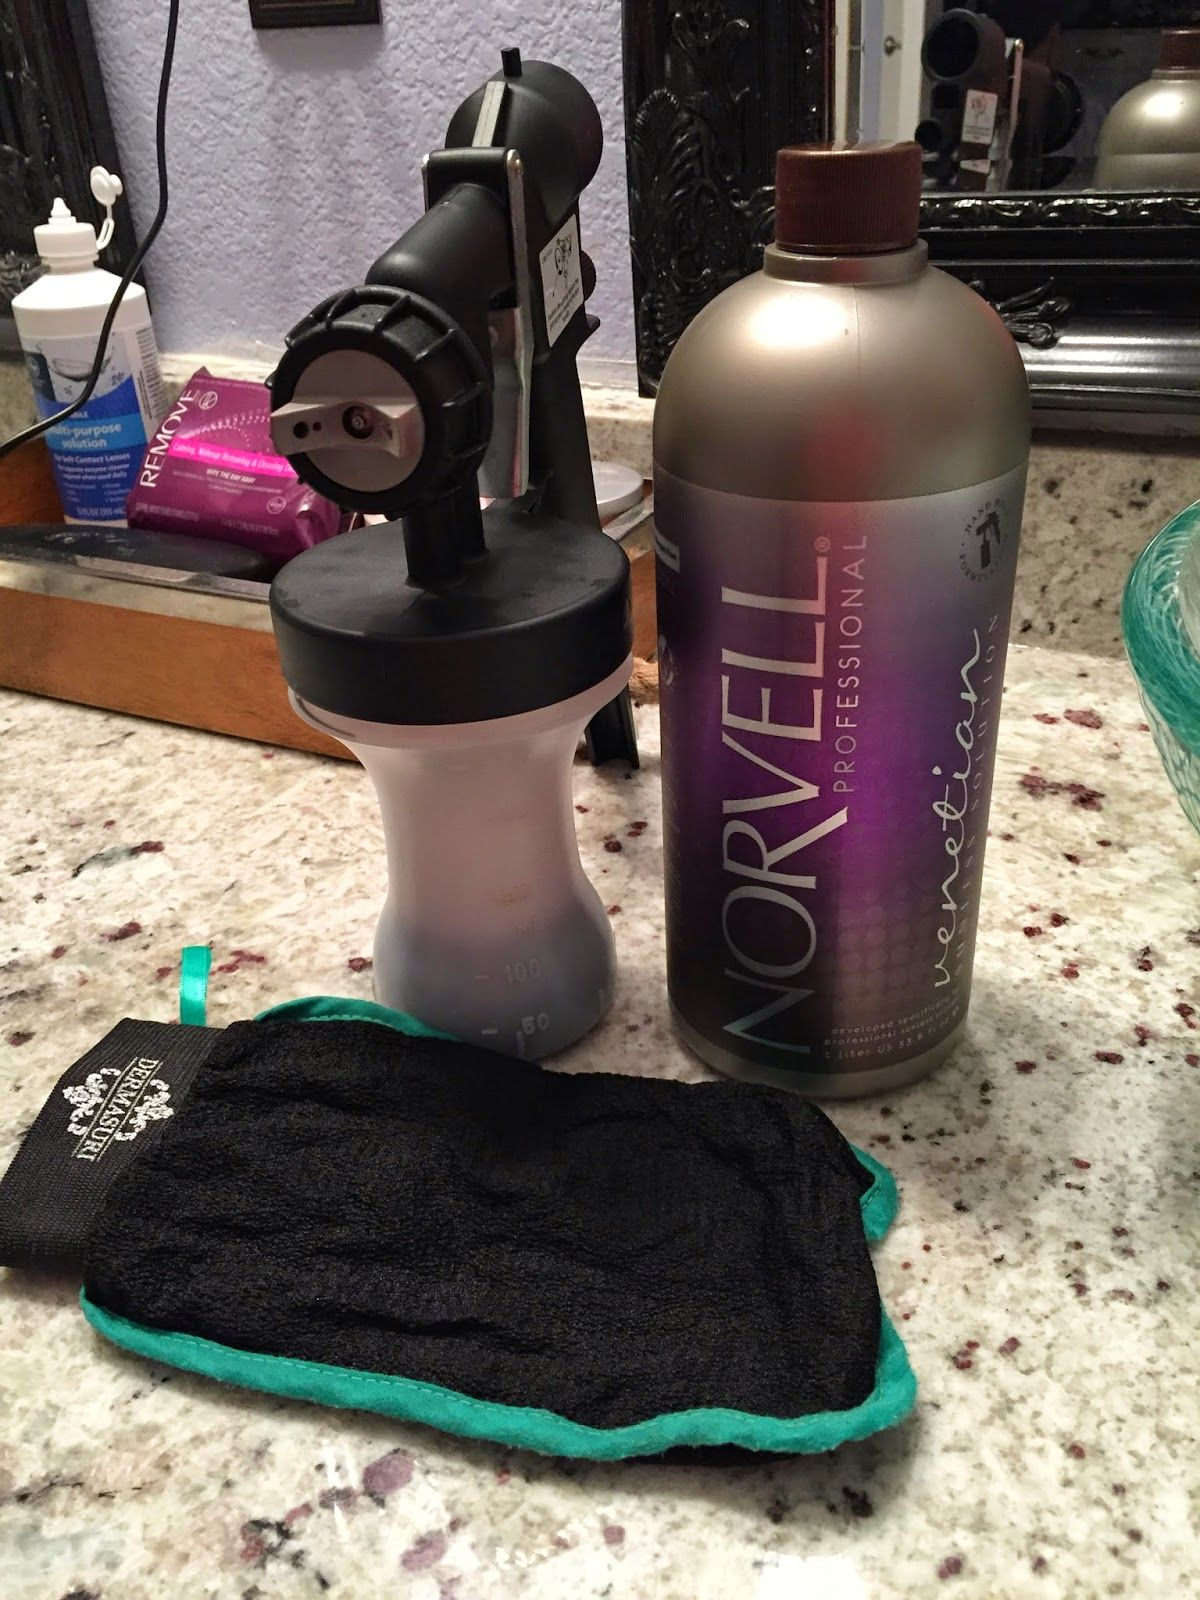 Spray Tan Machine Favorites New and Old. Spray tan